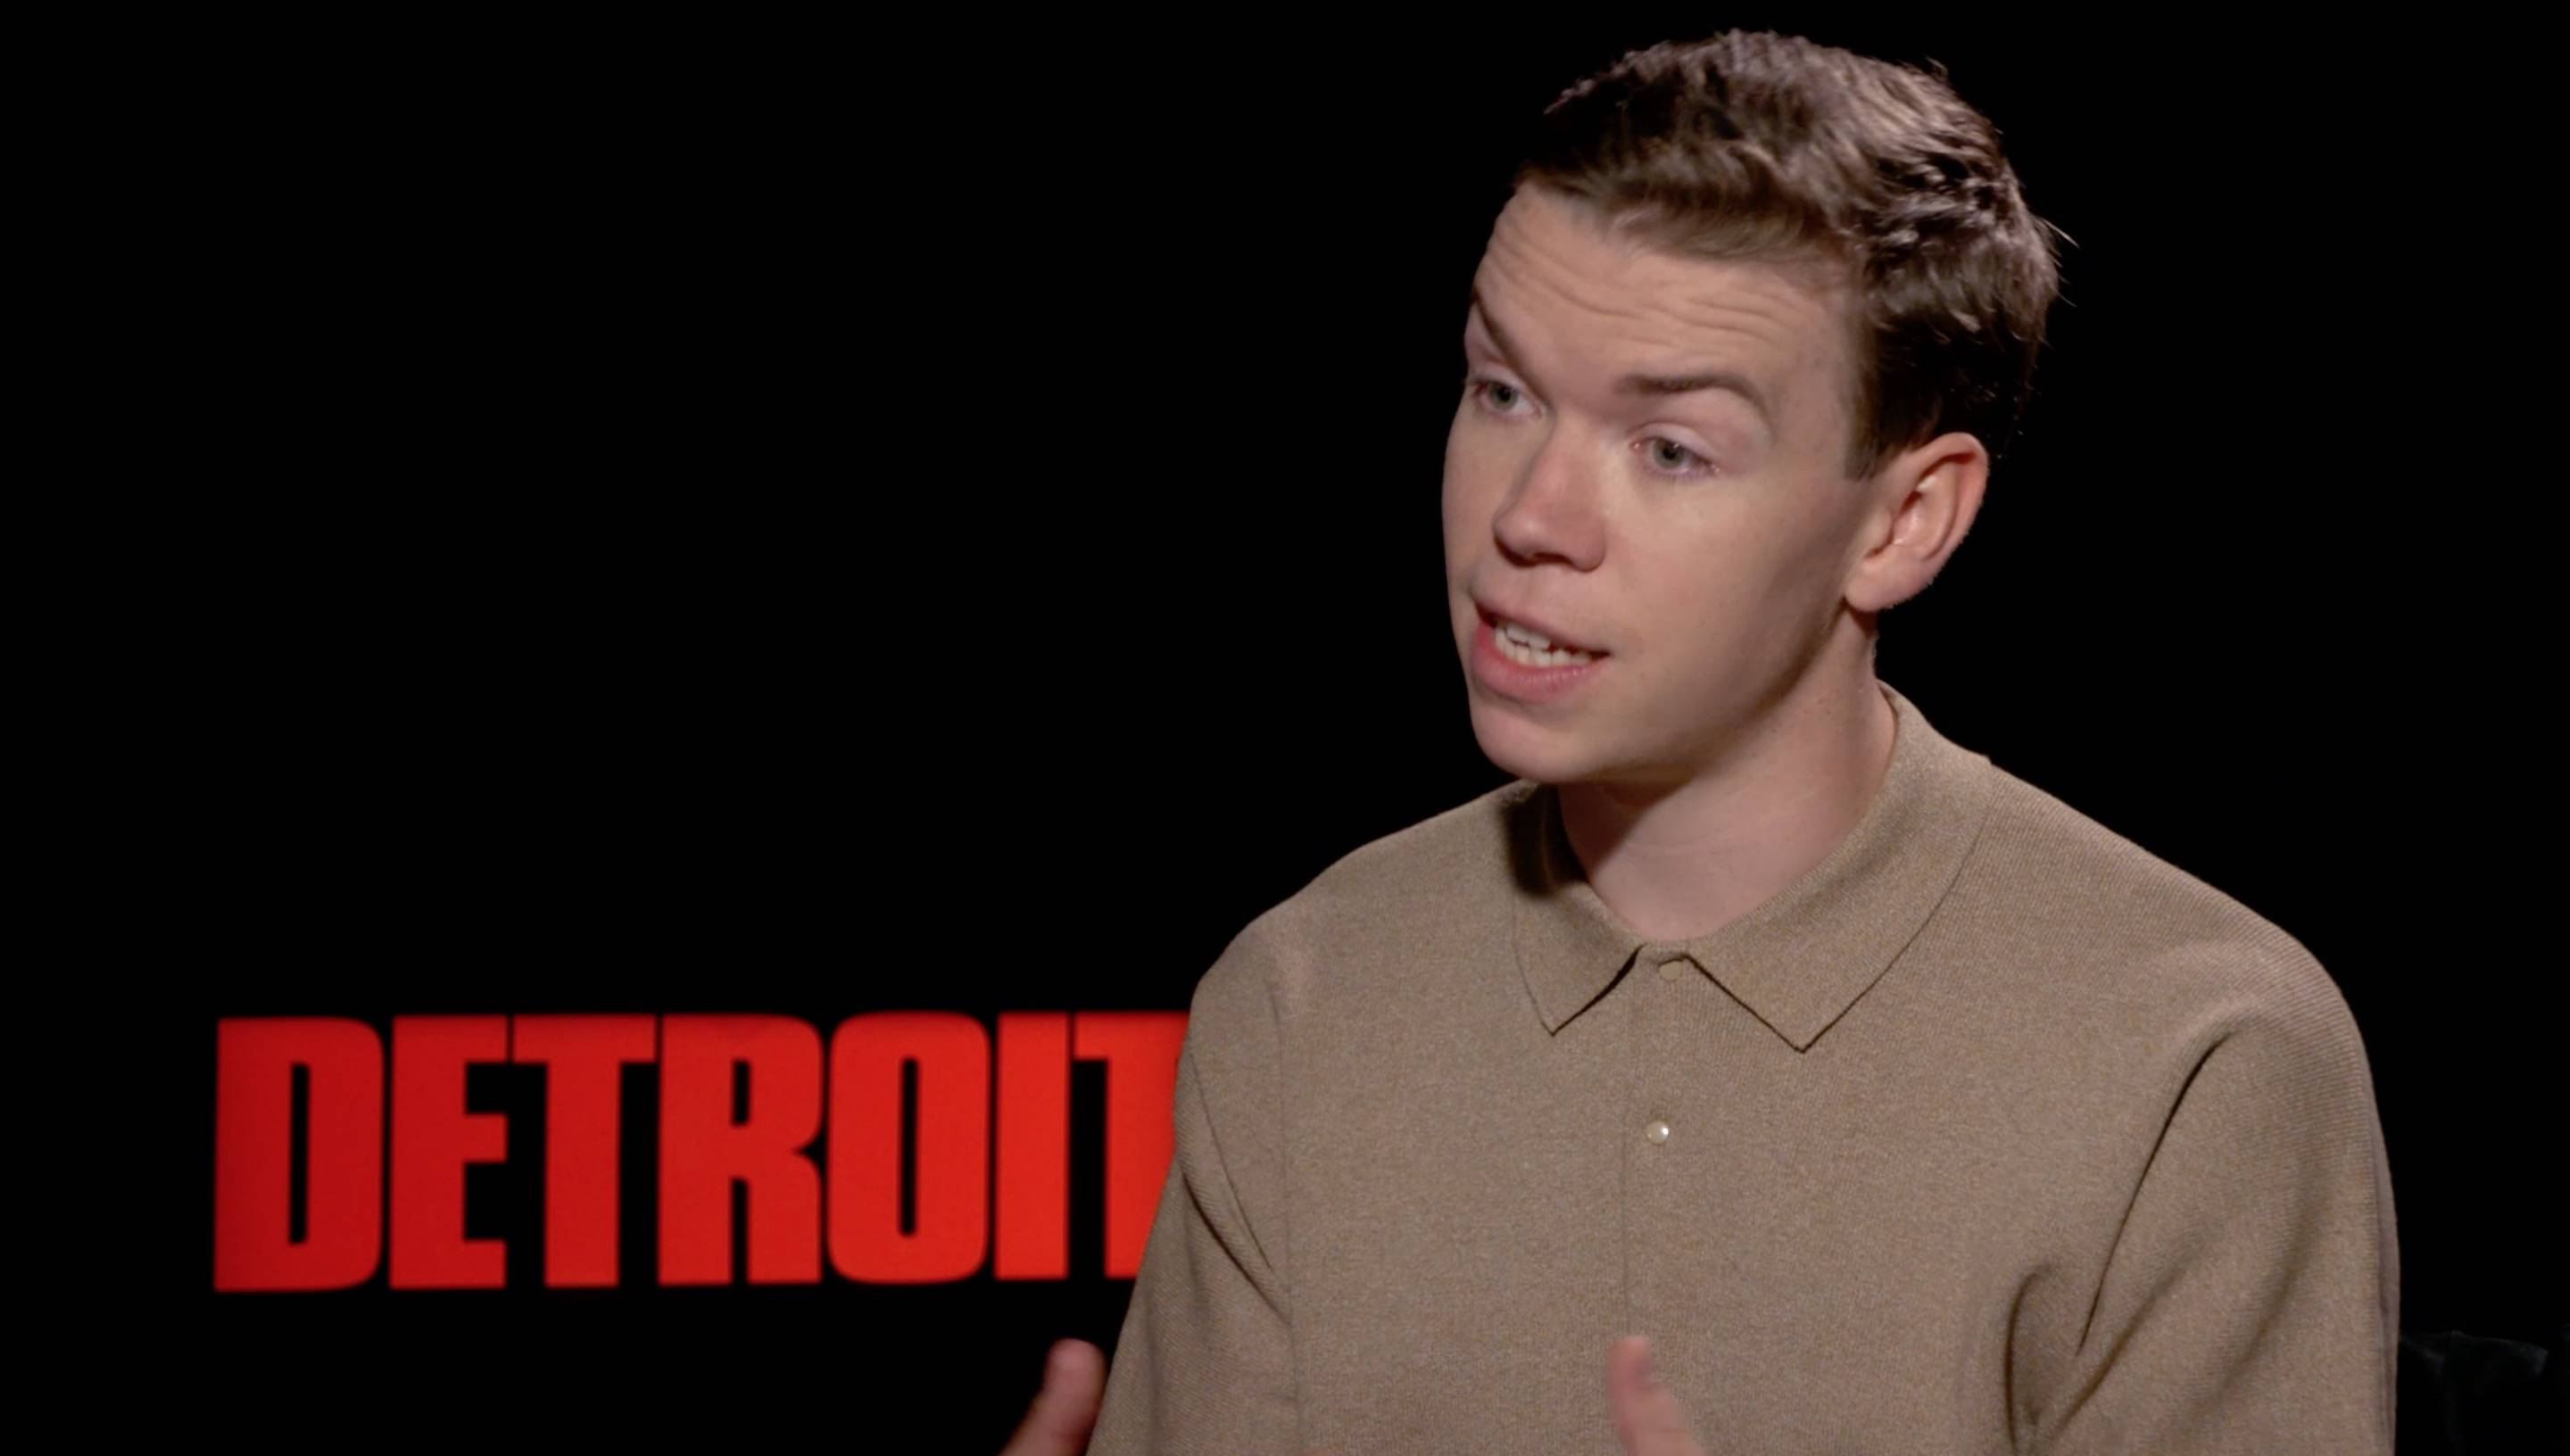 Detroit Cast on Preparing For Their Roles